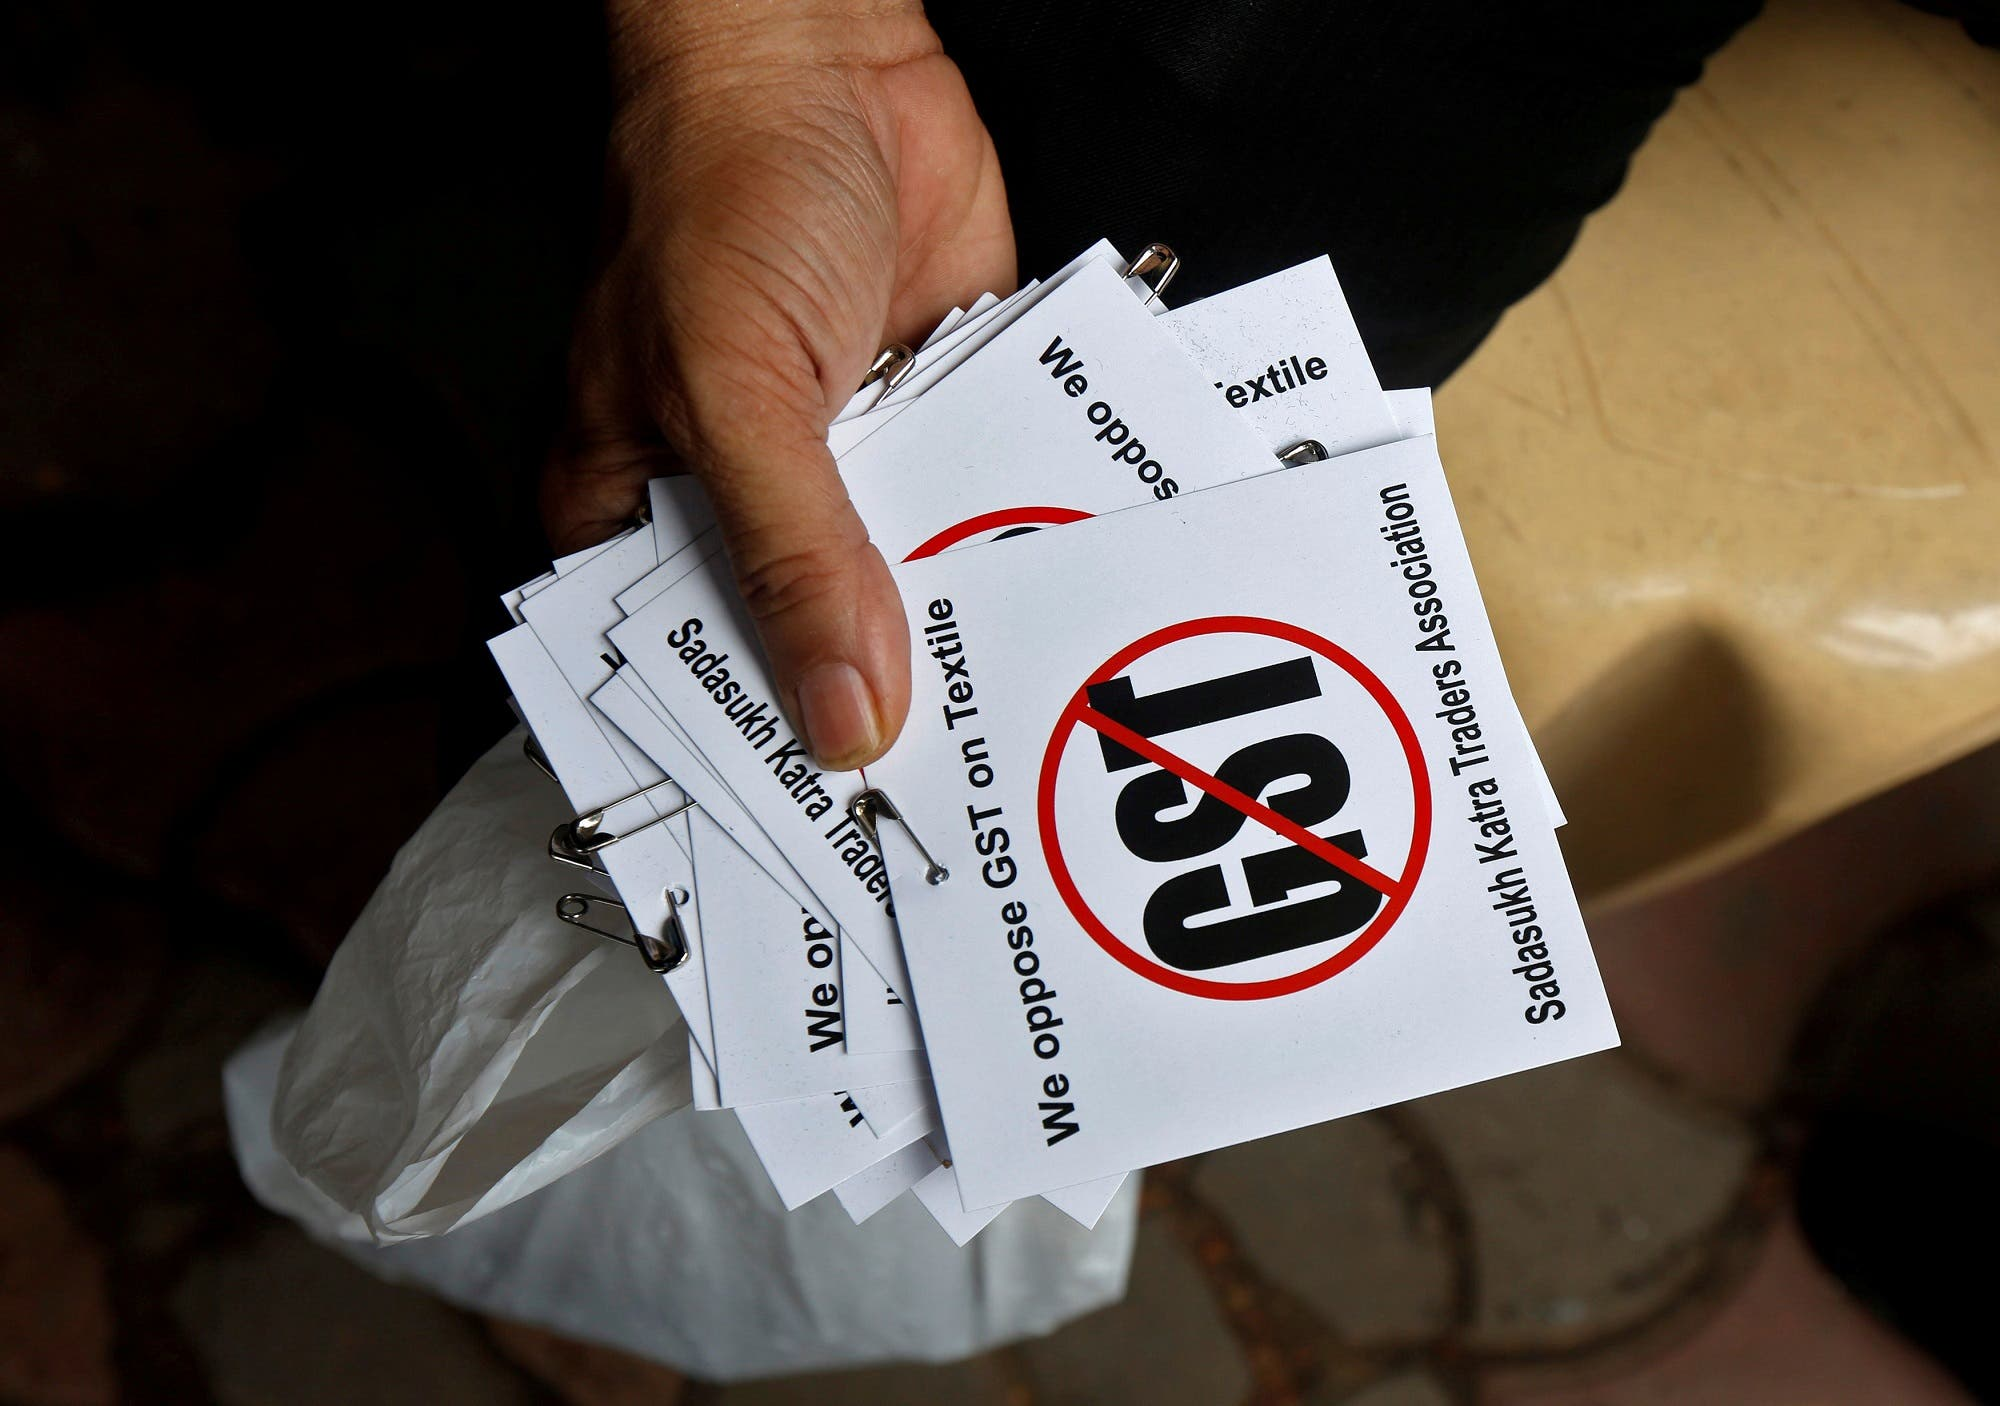 A cloth merchant holds message papers to distribute during a protest against the Goods and Services Tax (GST) on textiles in Kolkata, India, June 30, 2017. (Reuters)